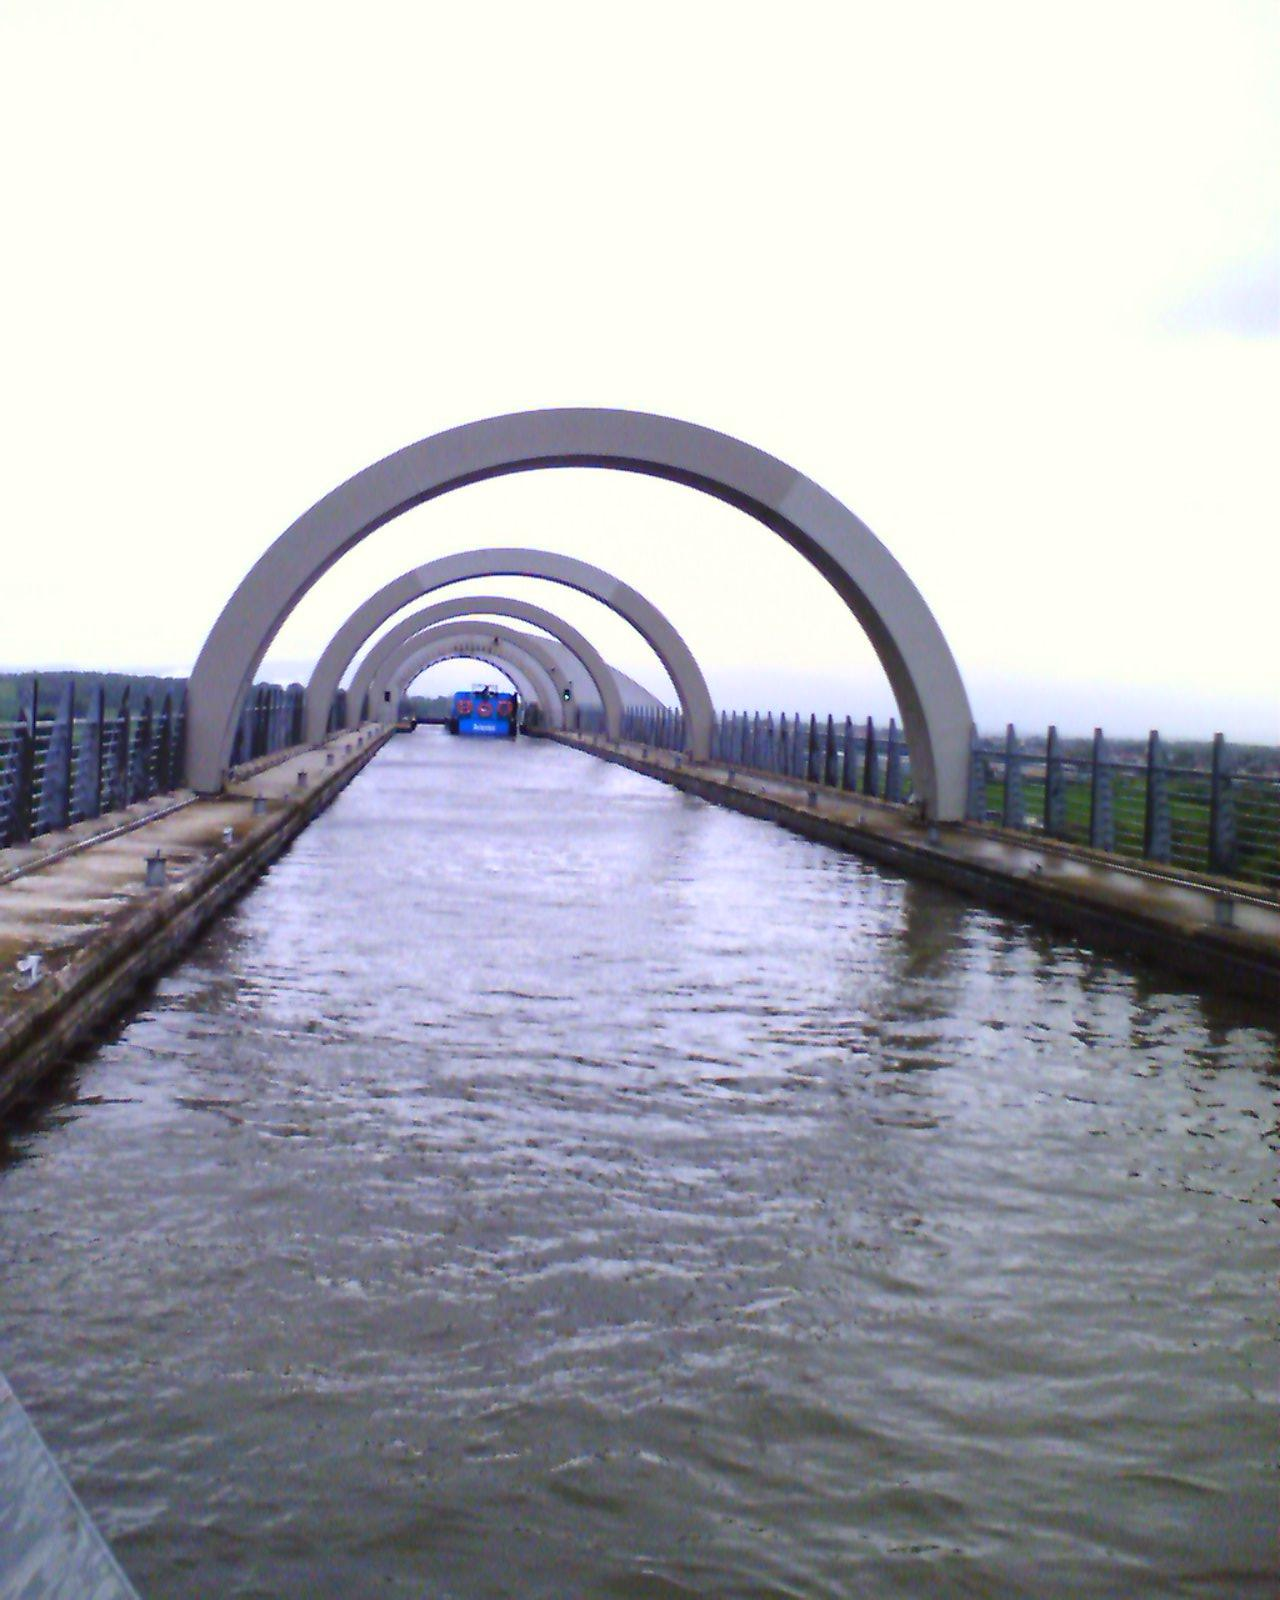 Falkirk Wheel at the Top